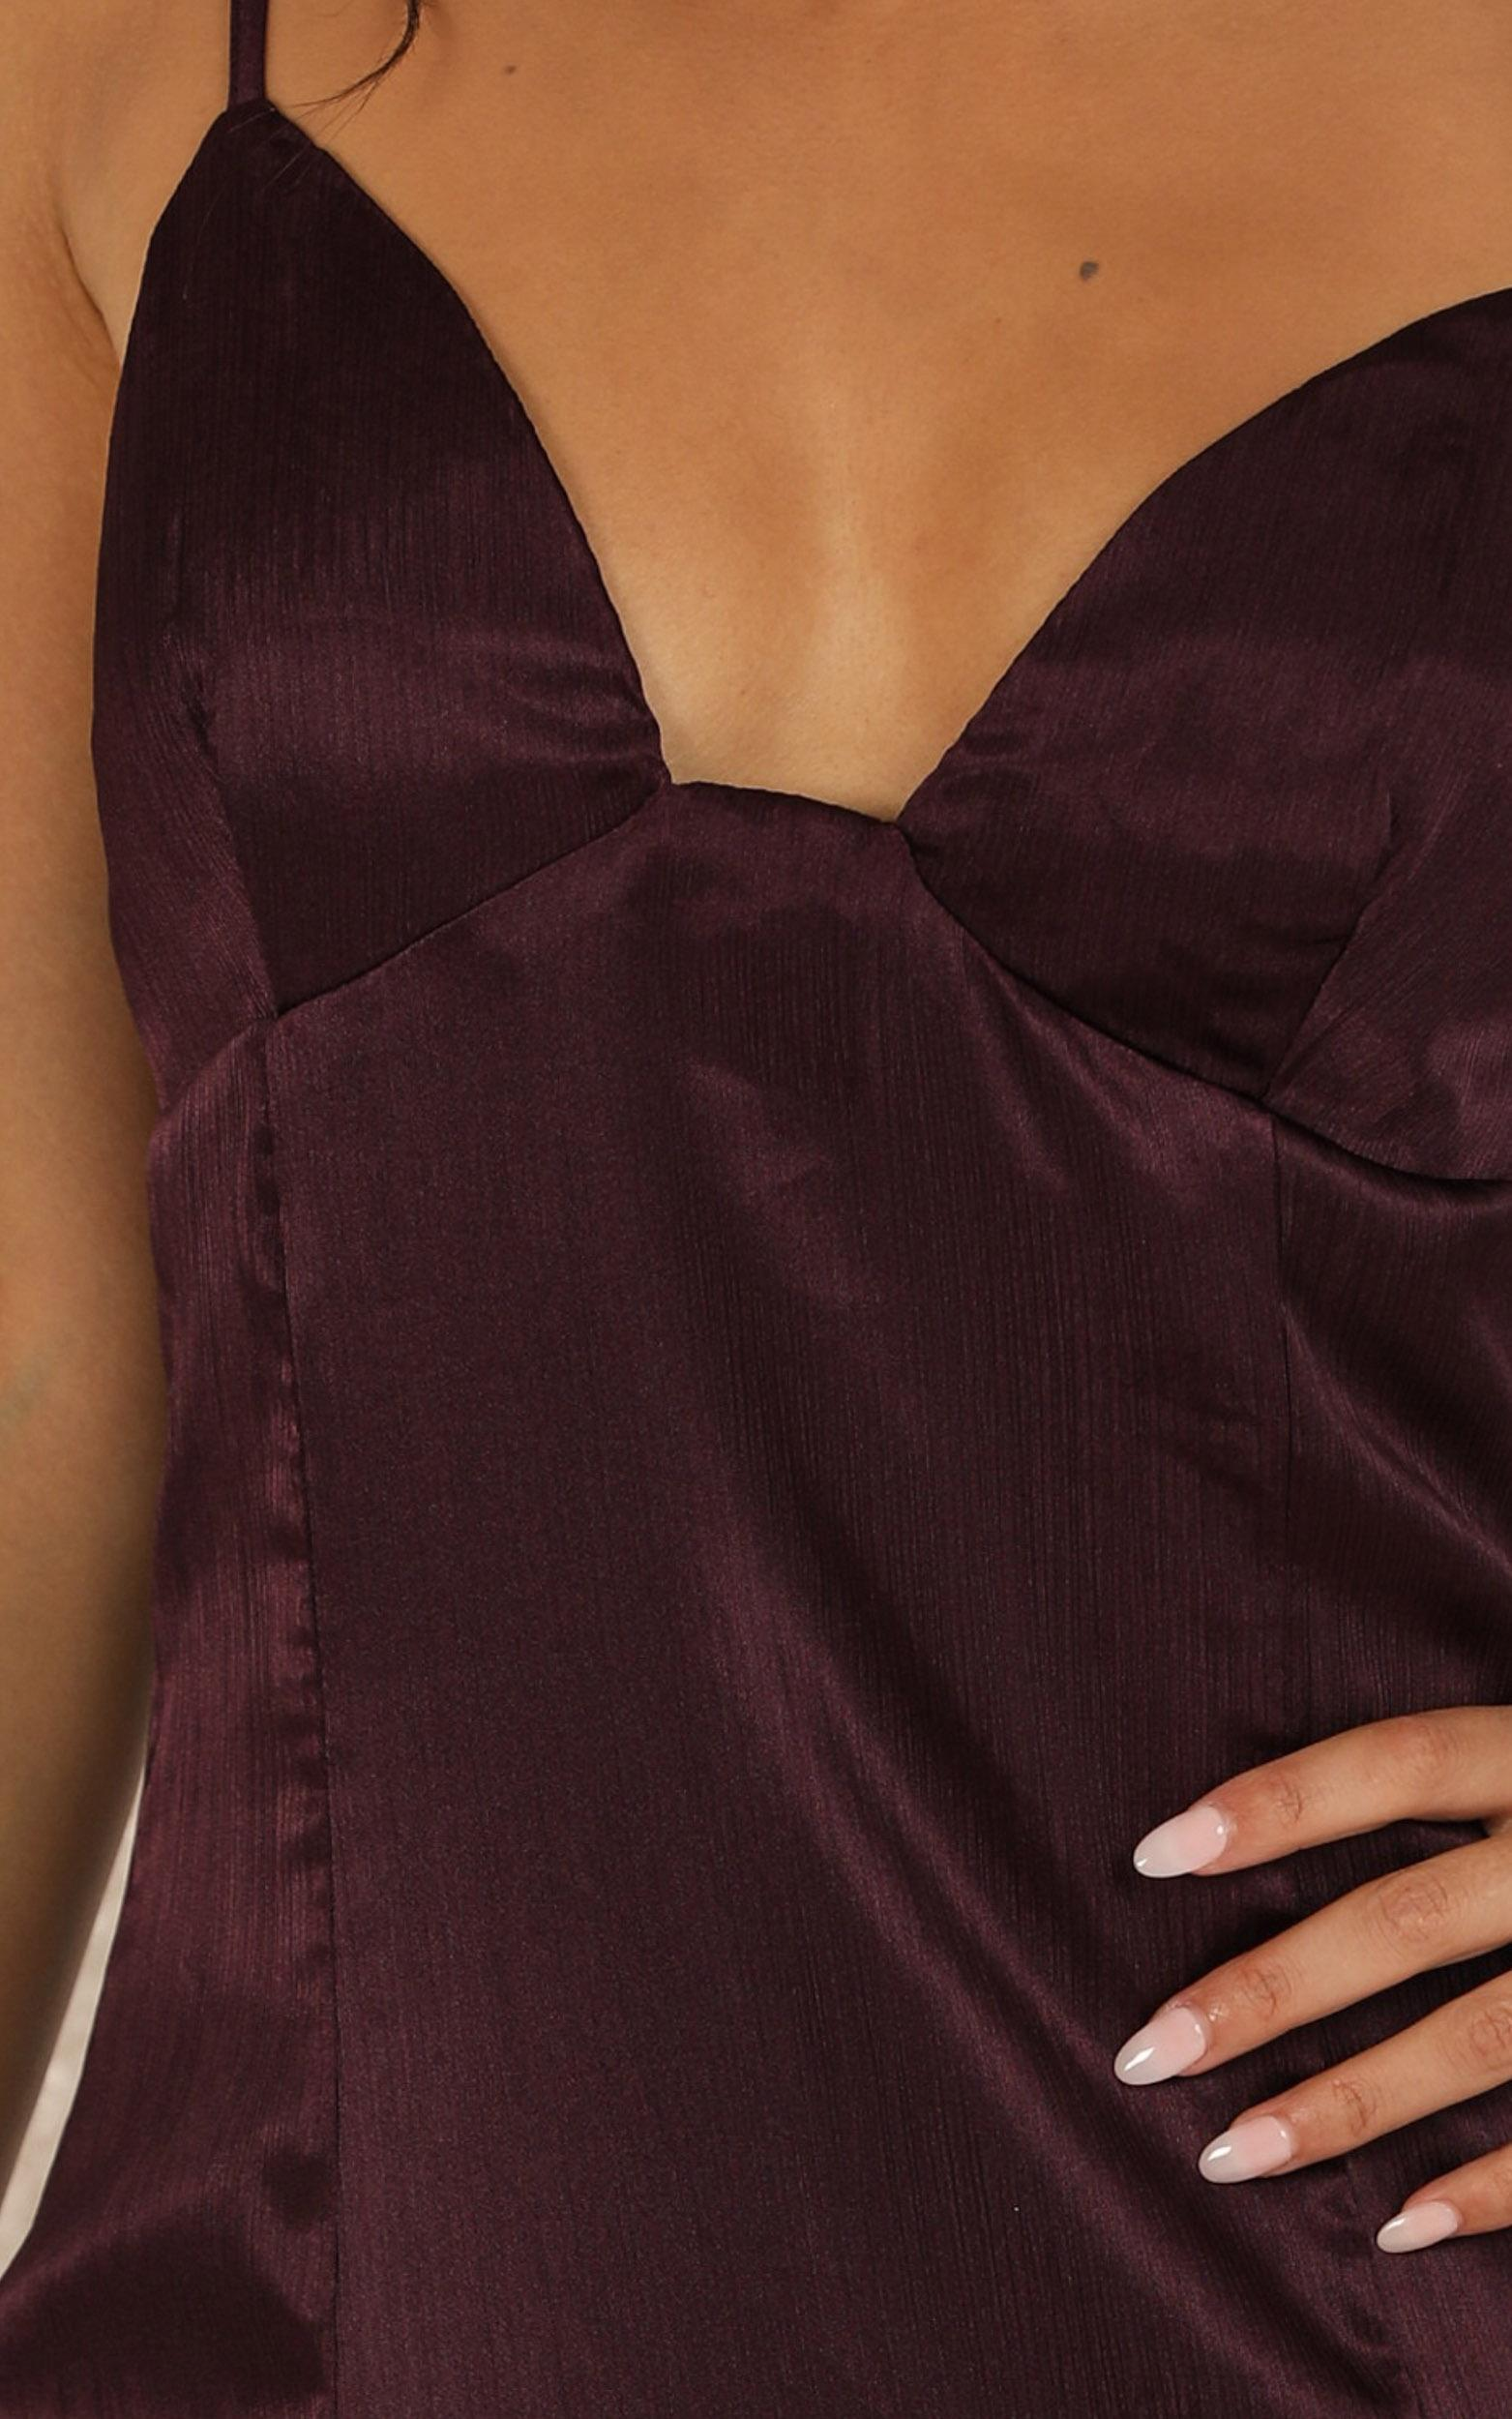 A Touch Of Your Love Dress in aubergine satin - 20 (XXXXL), PRP4, hi-res image number null